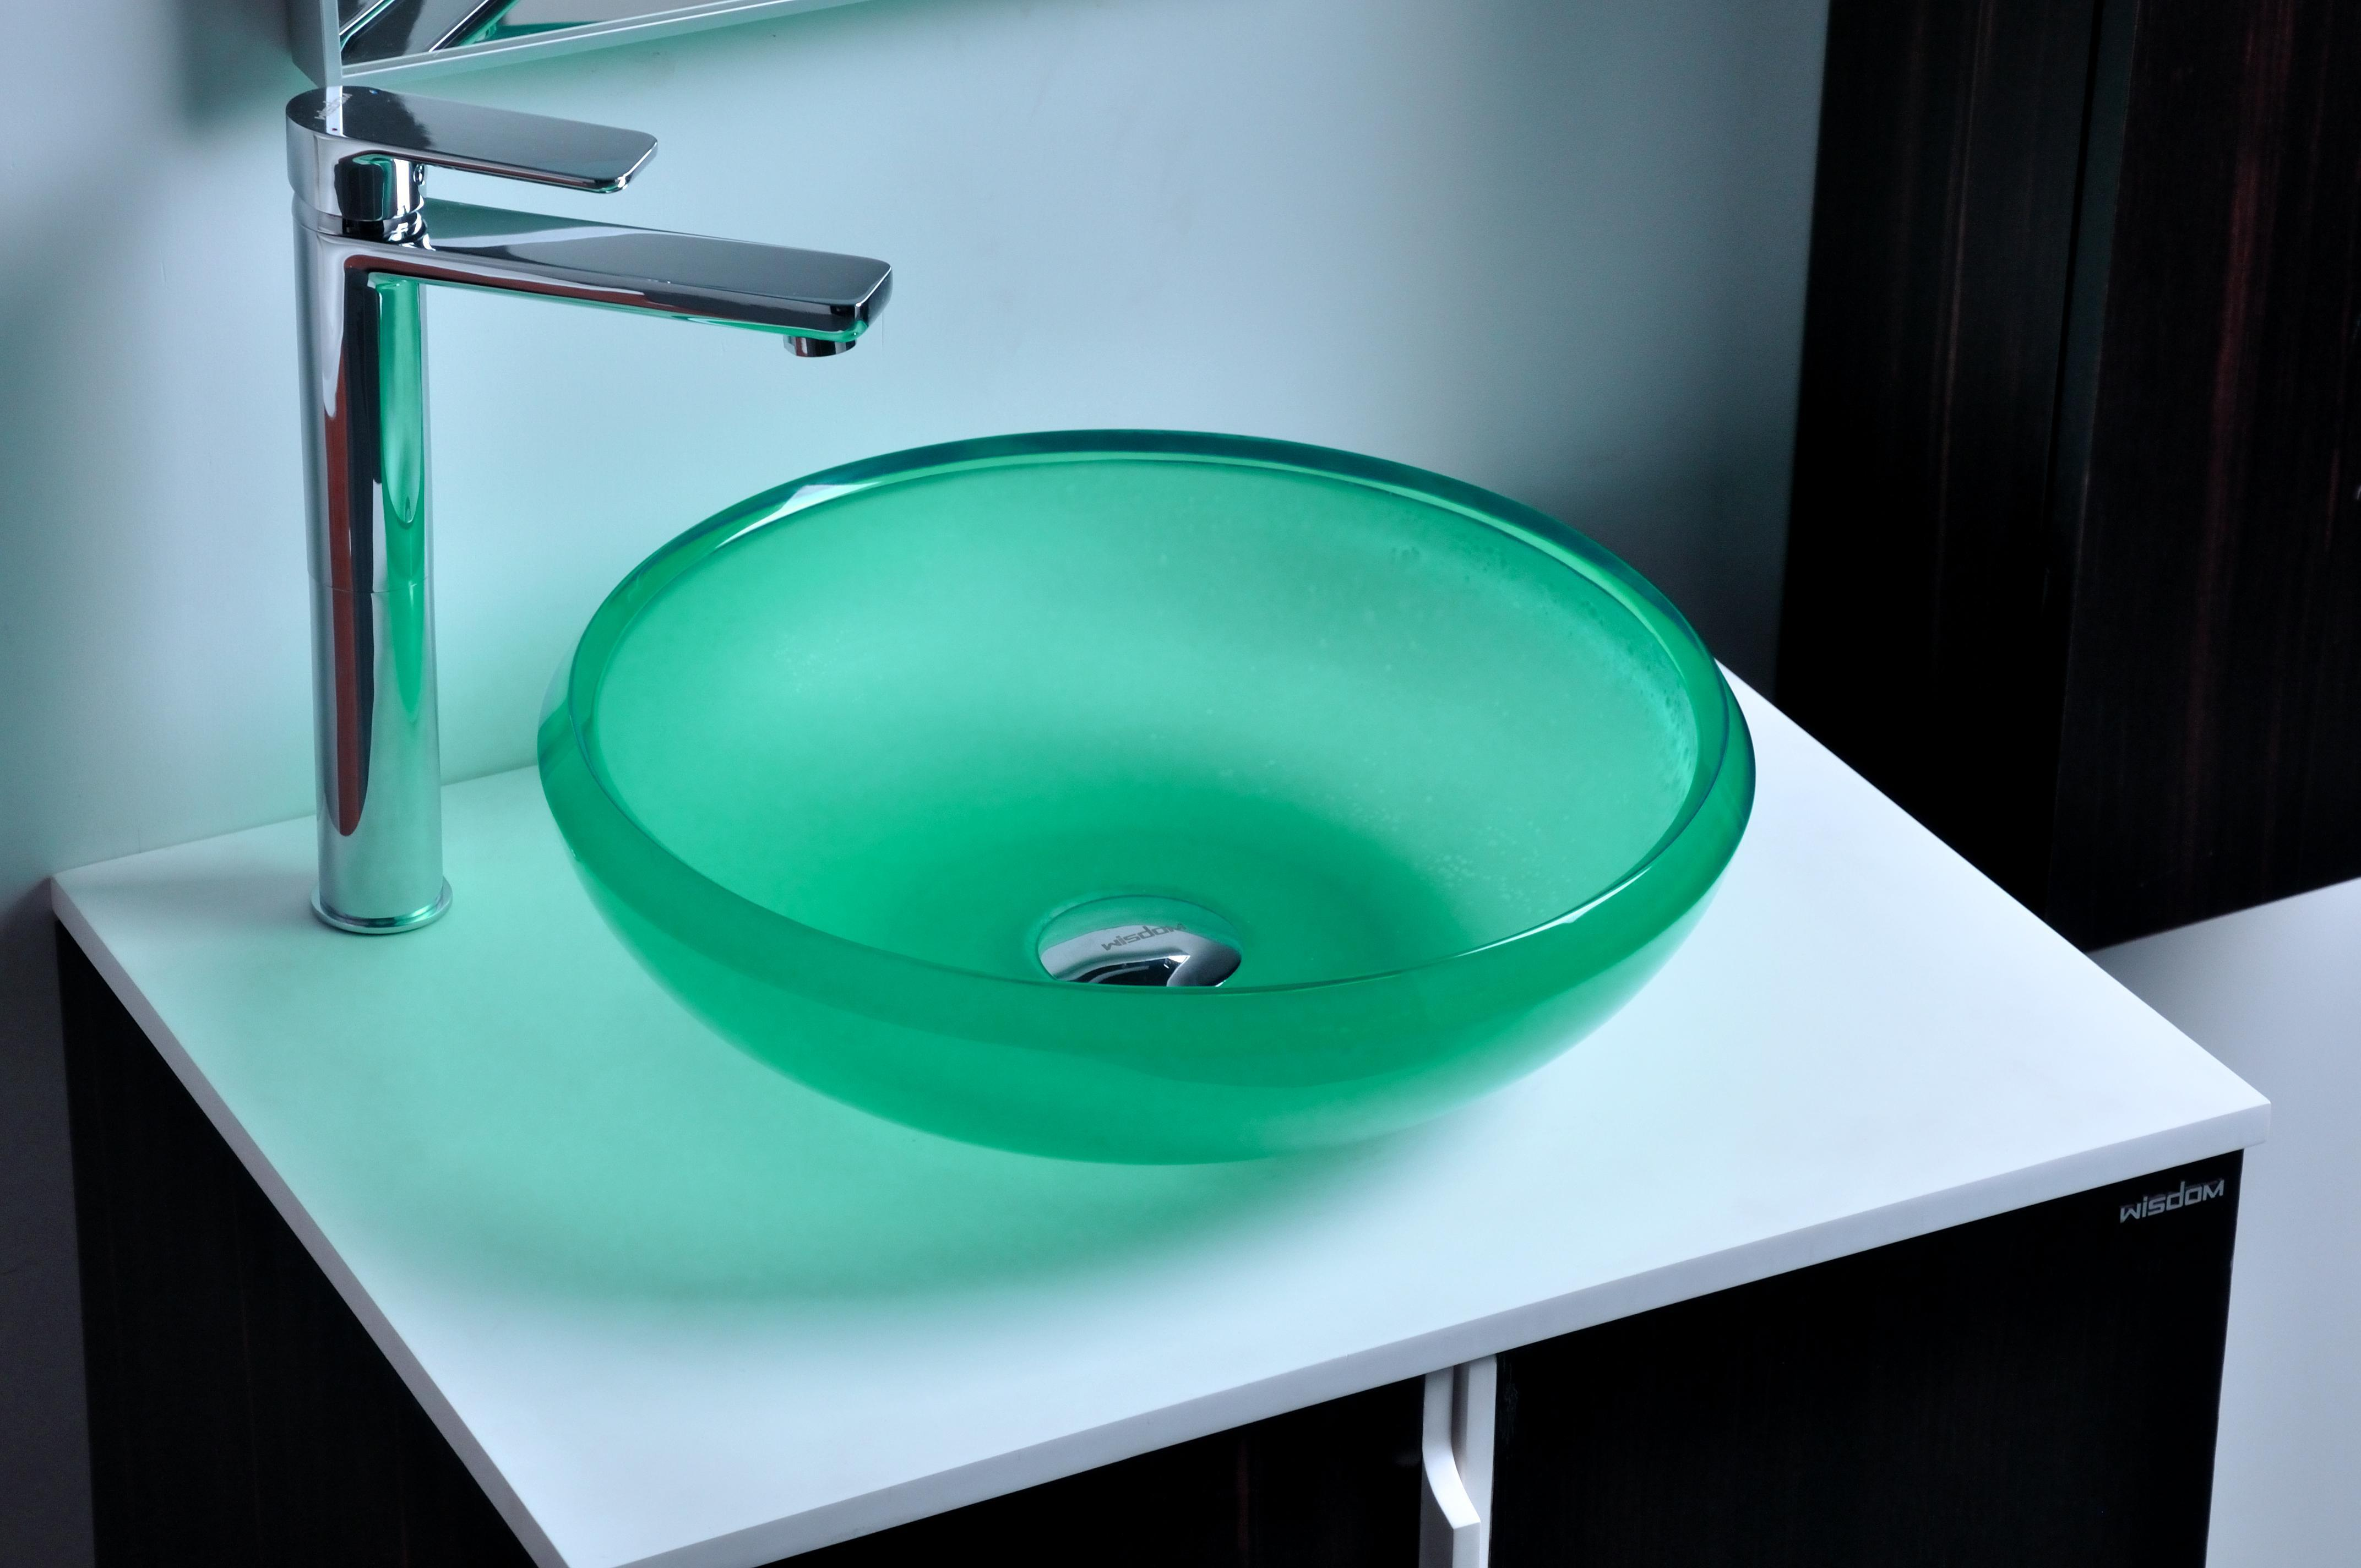 CUPC Certificate Resin Round Counter Top Sink Colored Cloakroom Wash Basin Solid Surface Stone Bathroom Vessel Sinks RS38278. Where to Buy Wash Basin Round Bathroom Online  Where Can I Buy